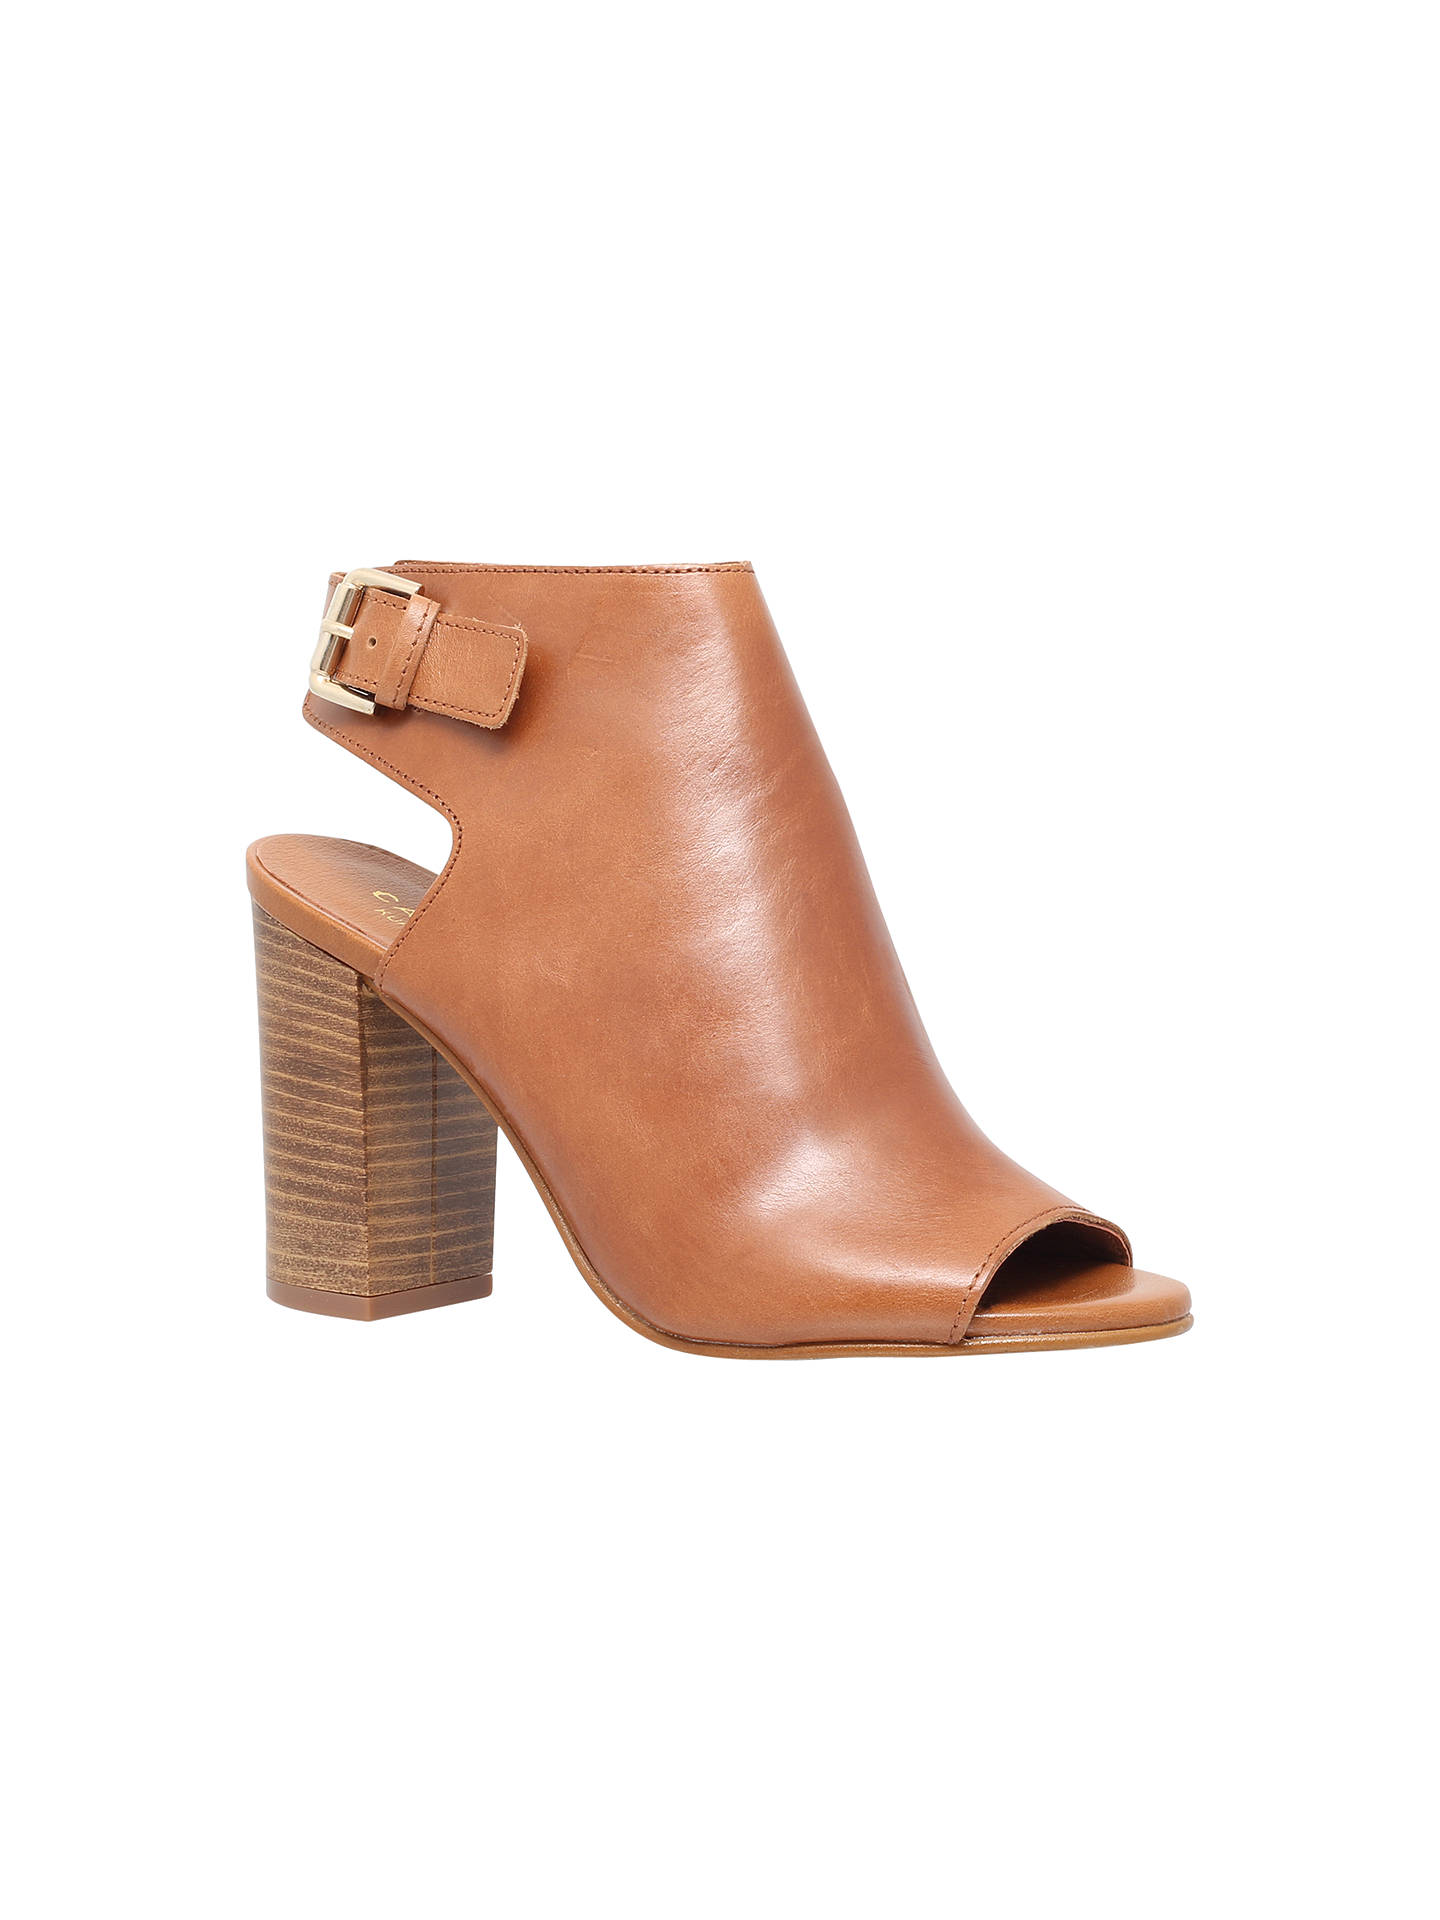 c89a4f08fc8 Carvela Assent Block Heeled Peep Toe Sandals at John Lewis   Partners